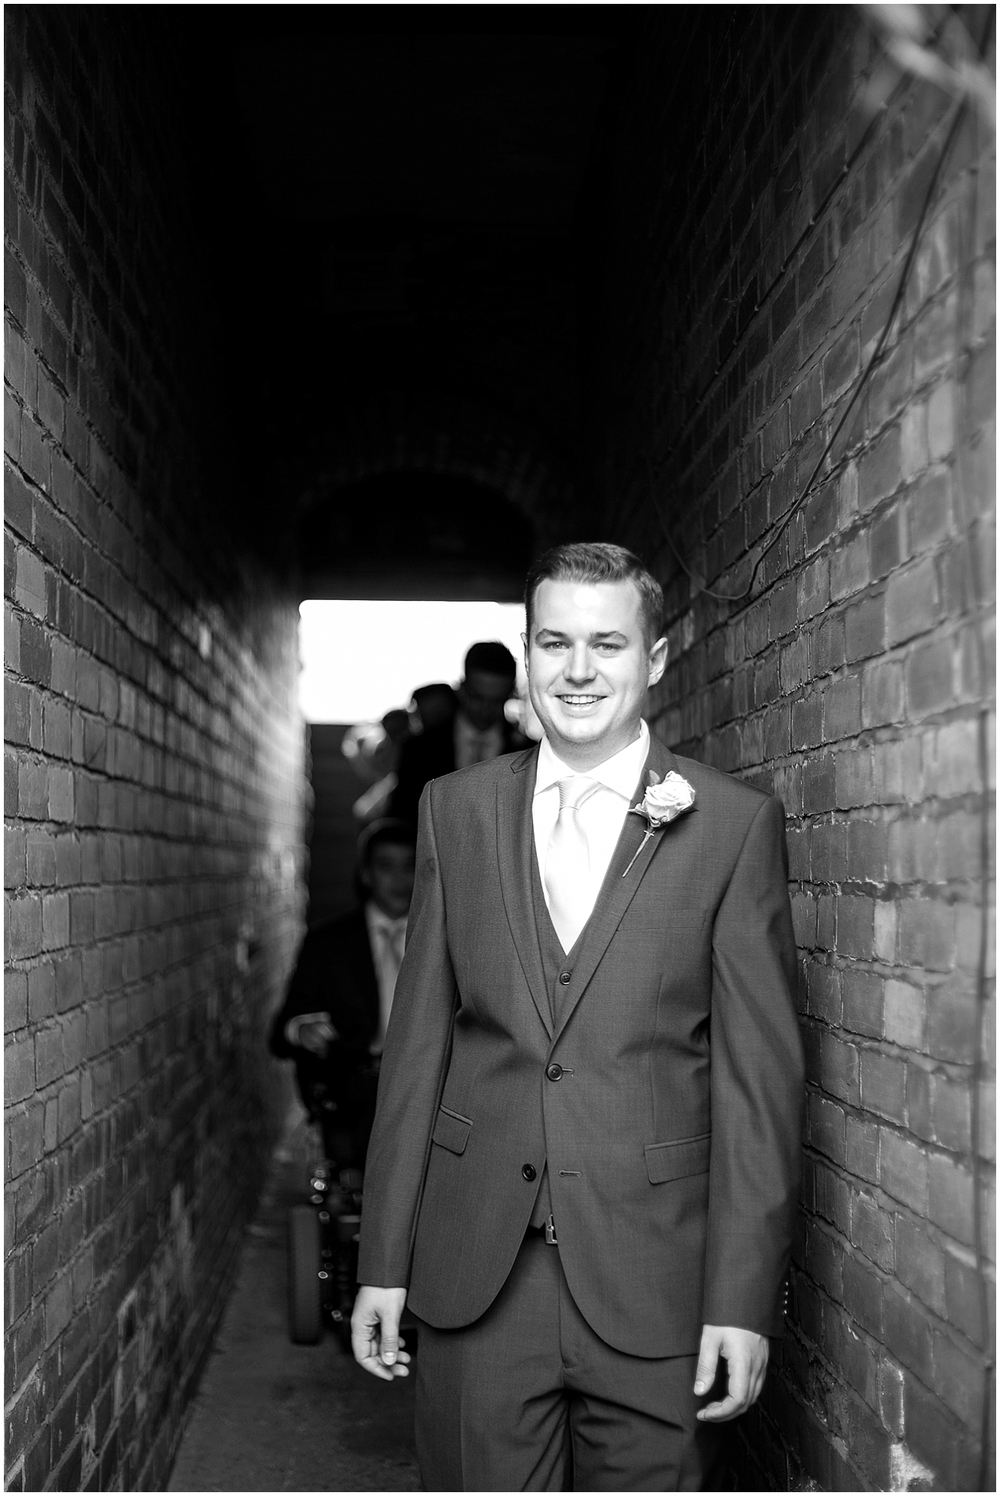 the groom on the way to church - Sheffield Wedding Photography